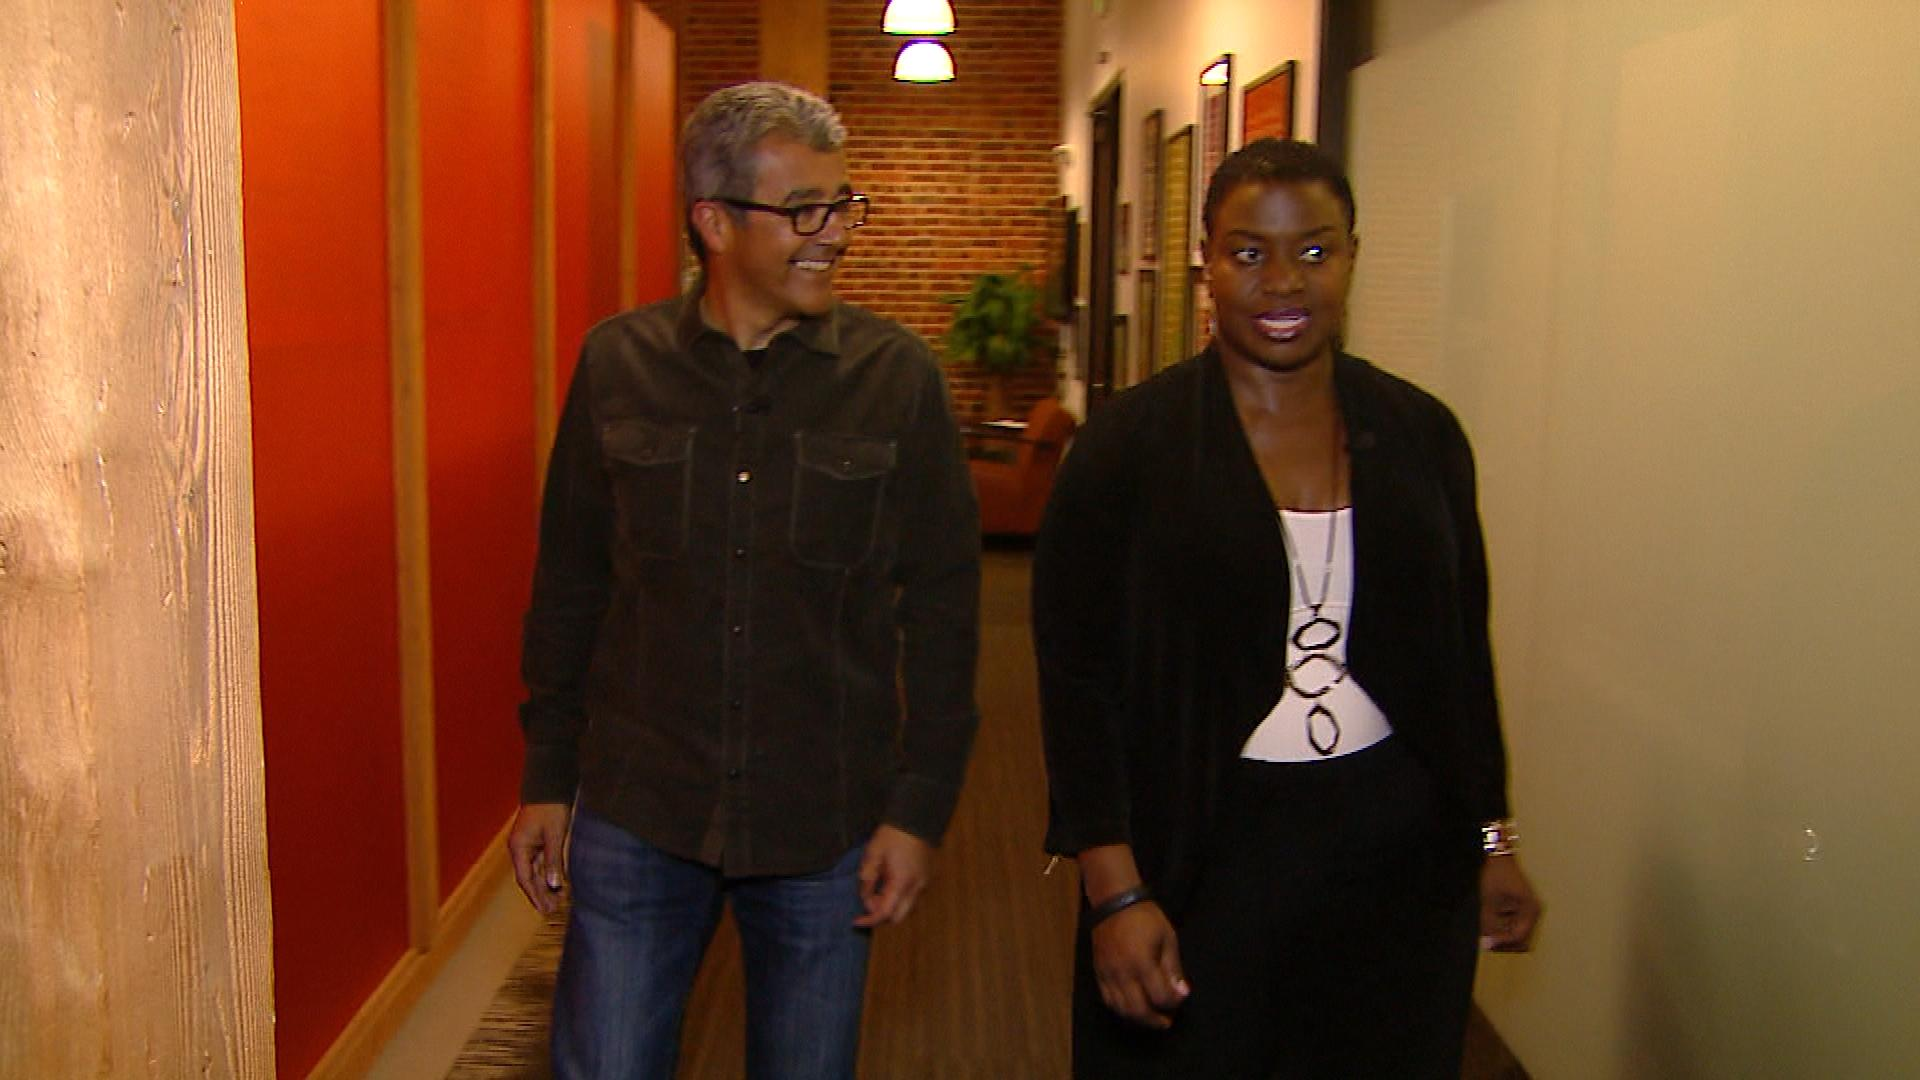 CBS4's Gloria Neal walks with Wayne Guerra, co-founder of iTriage. (Credit: CBS)